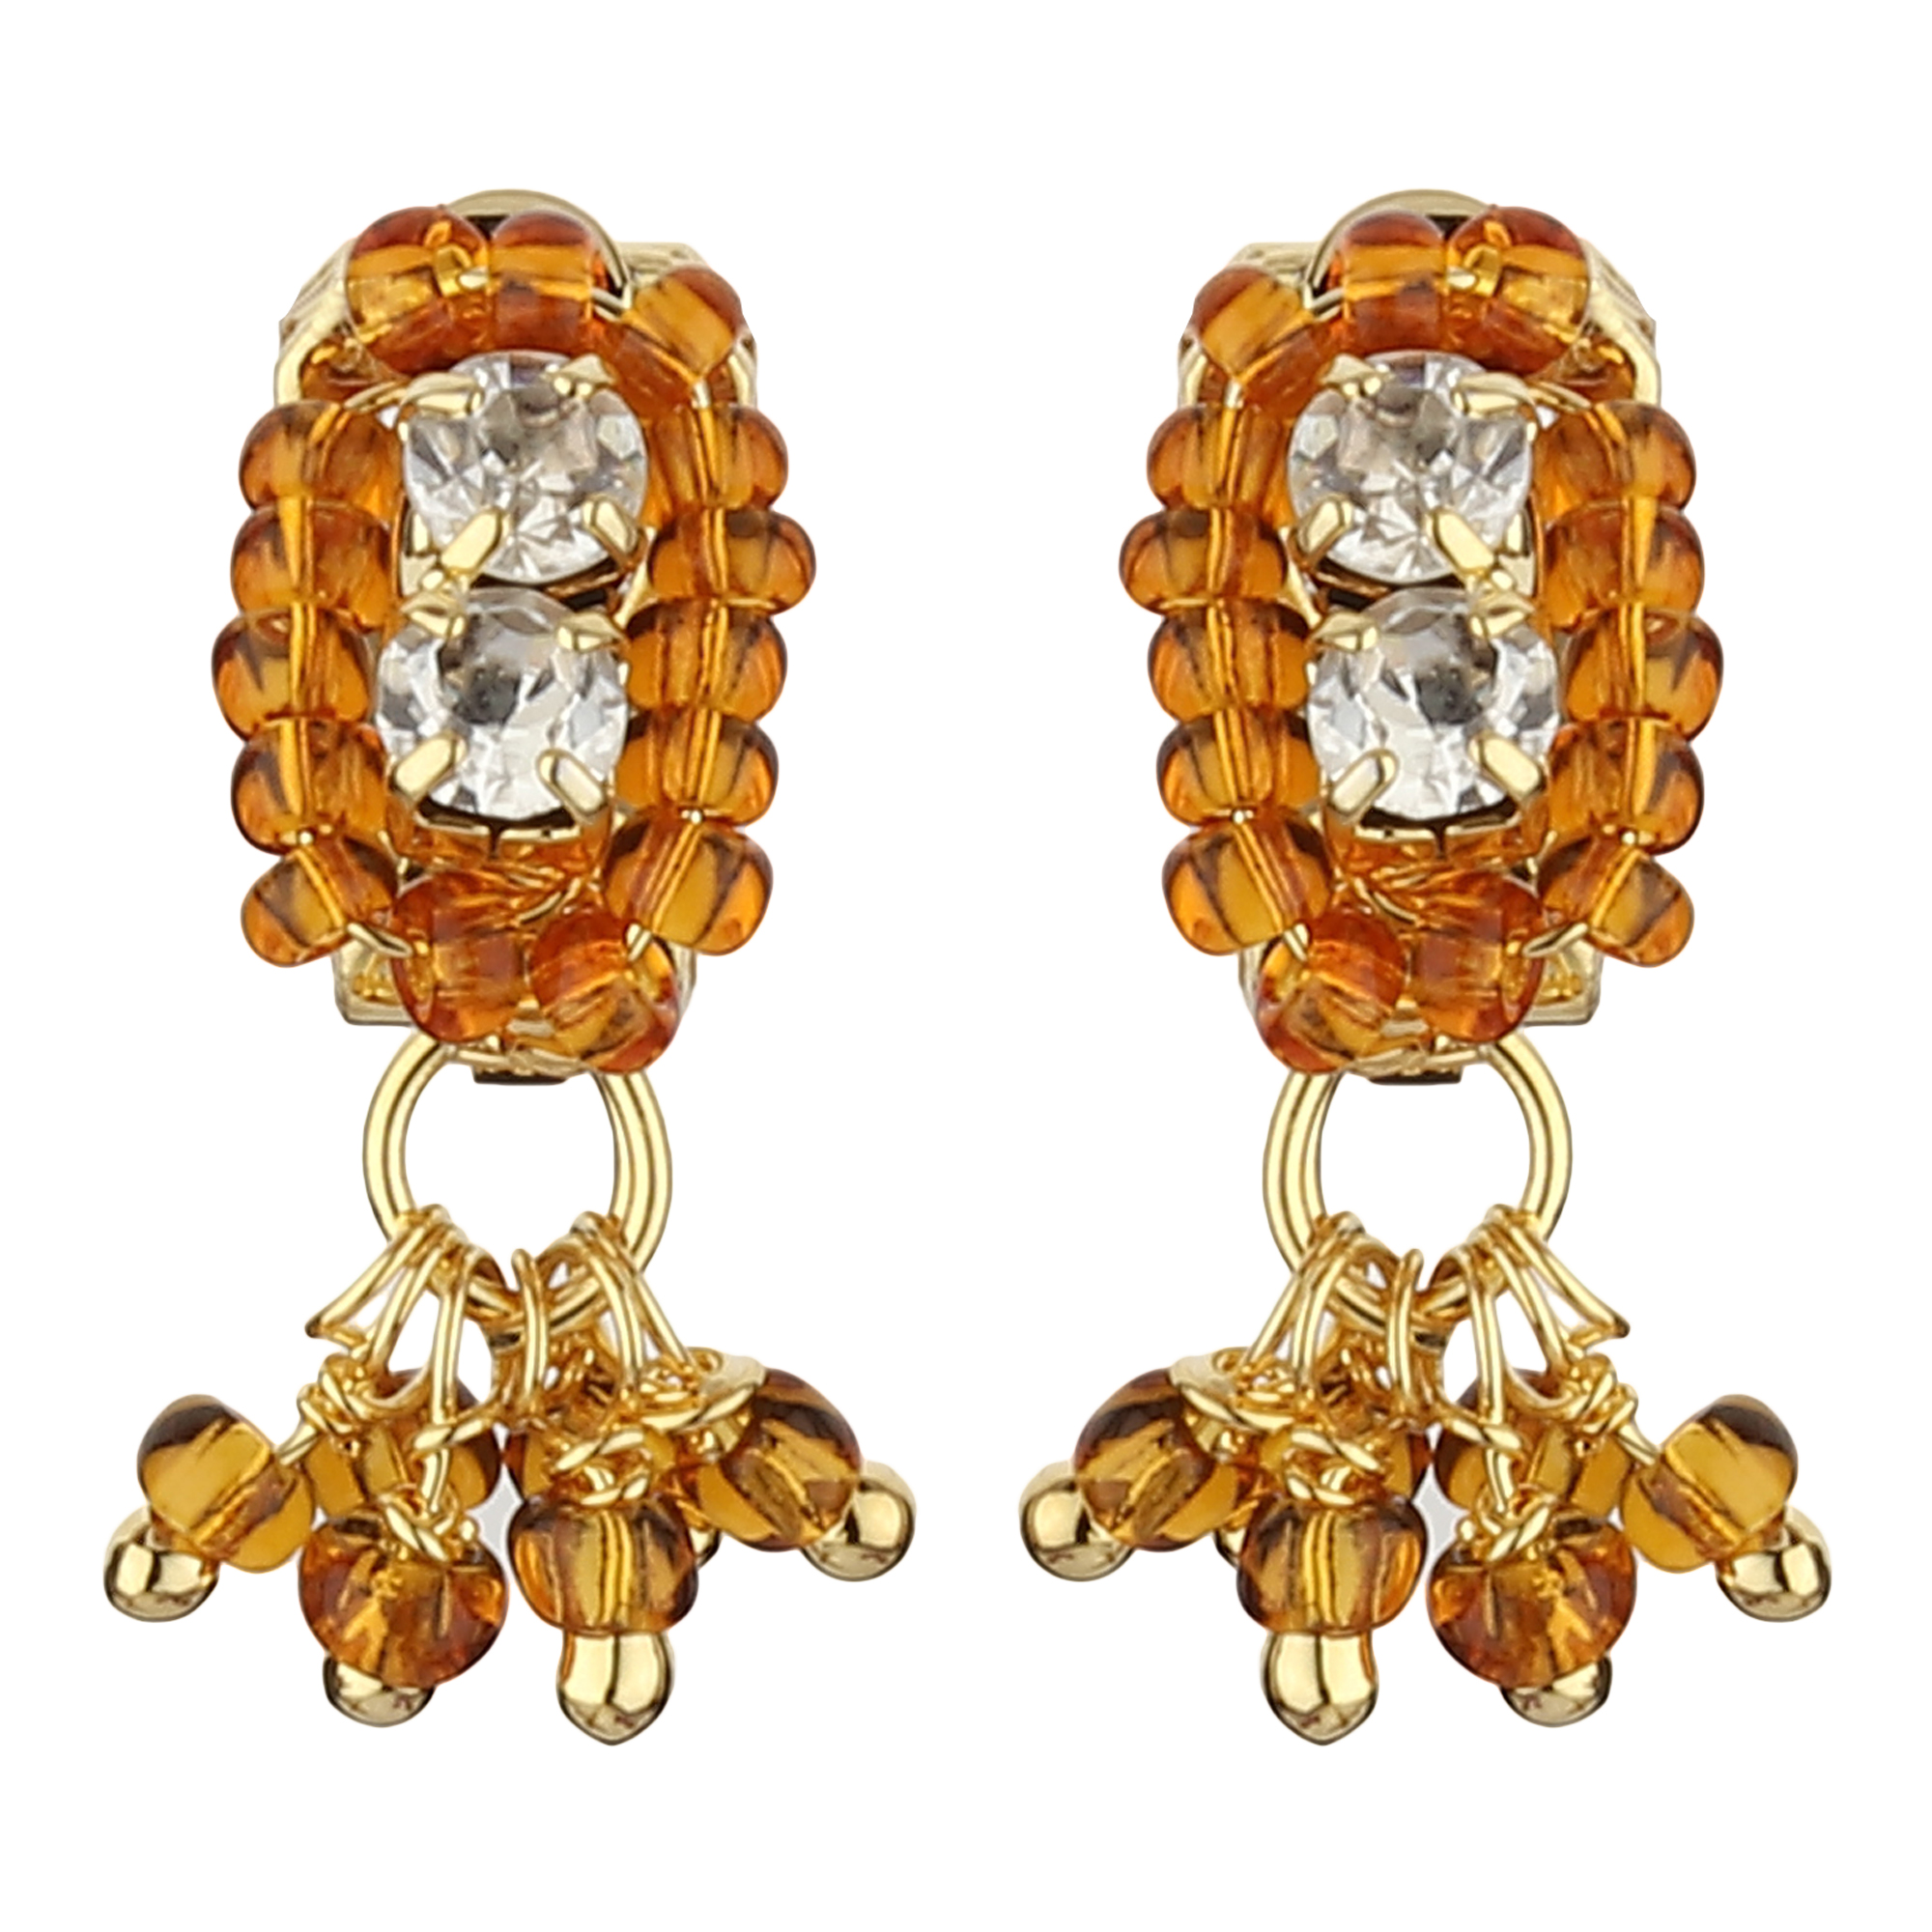 FirstBlush Clip On Earrings for Non Piearced Ears for Women & Girls; Plating: Gold; Color: Gold; Size: 20 X 8mm; Wt.: 2gm. (MIEC104M118)